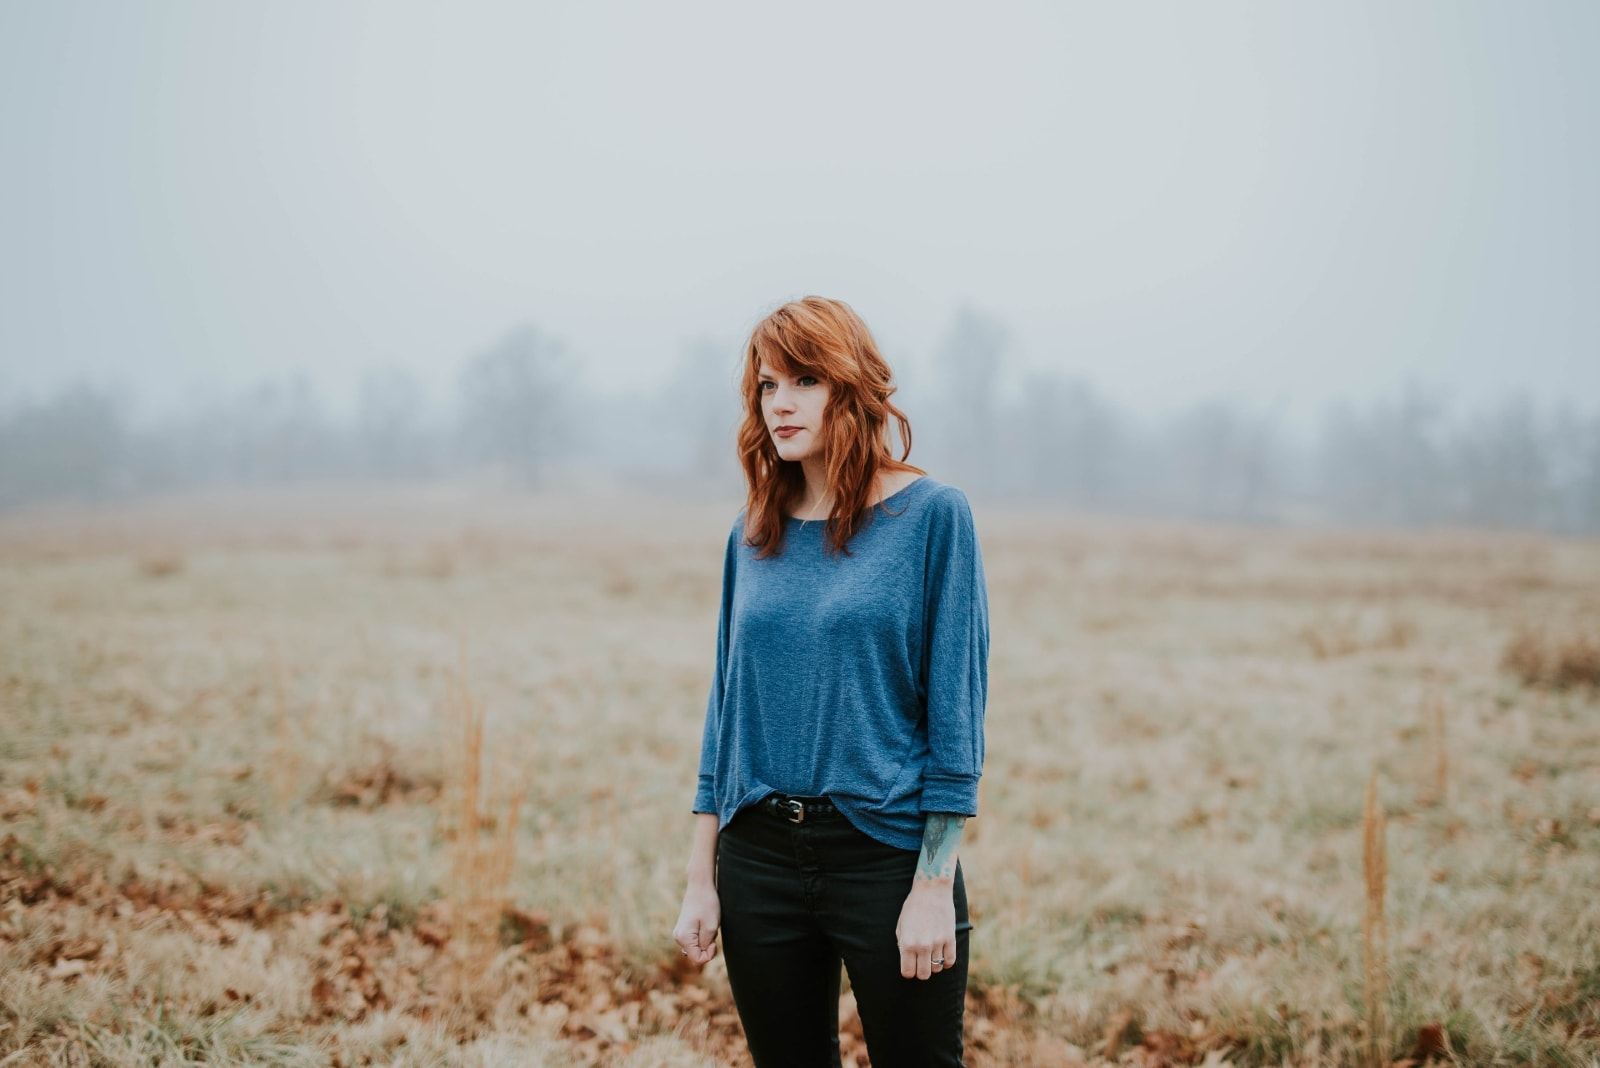 woman in blue top standing in the field